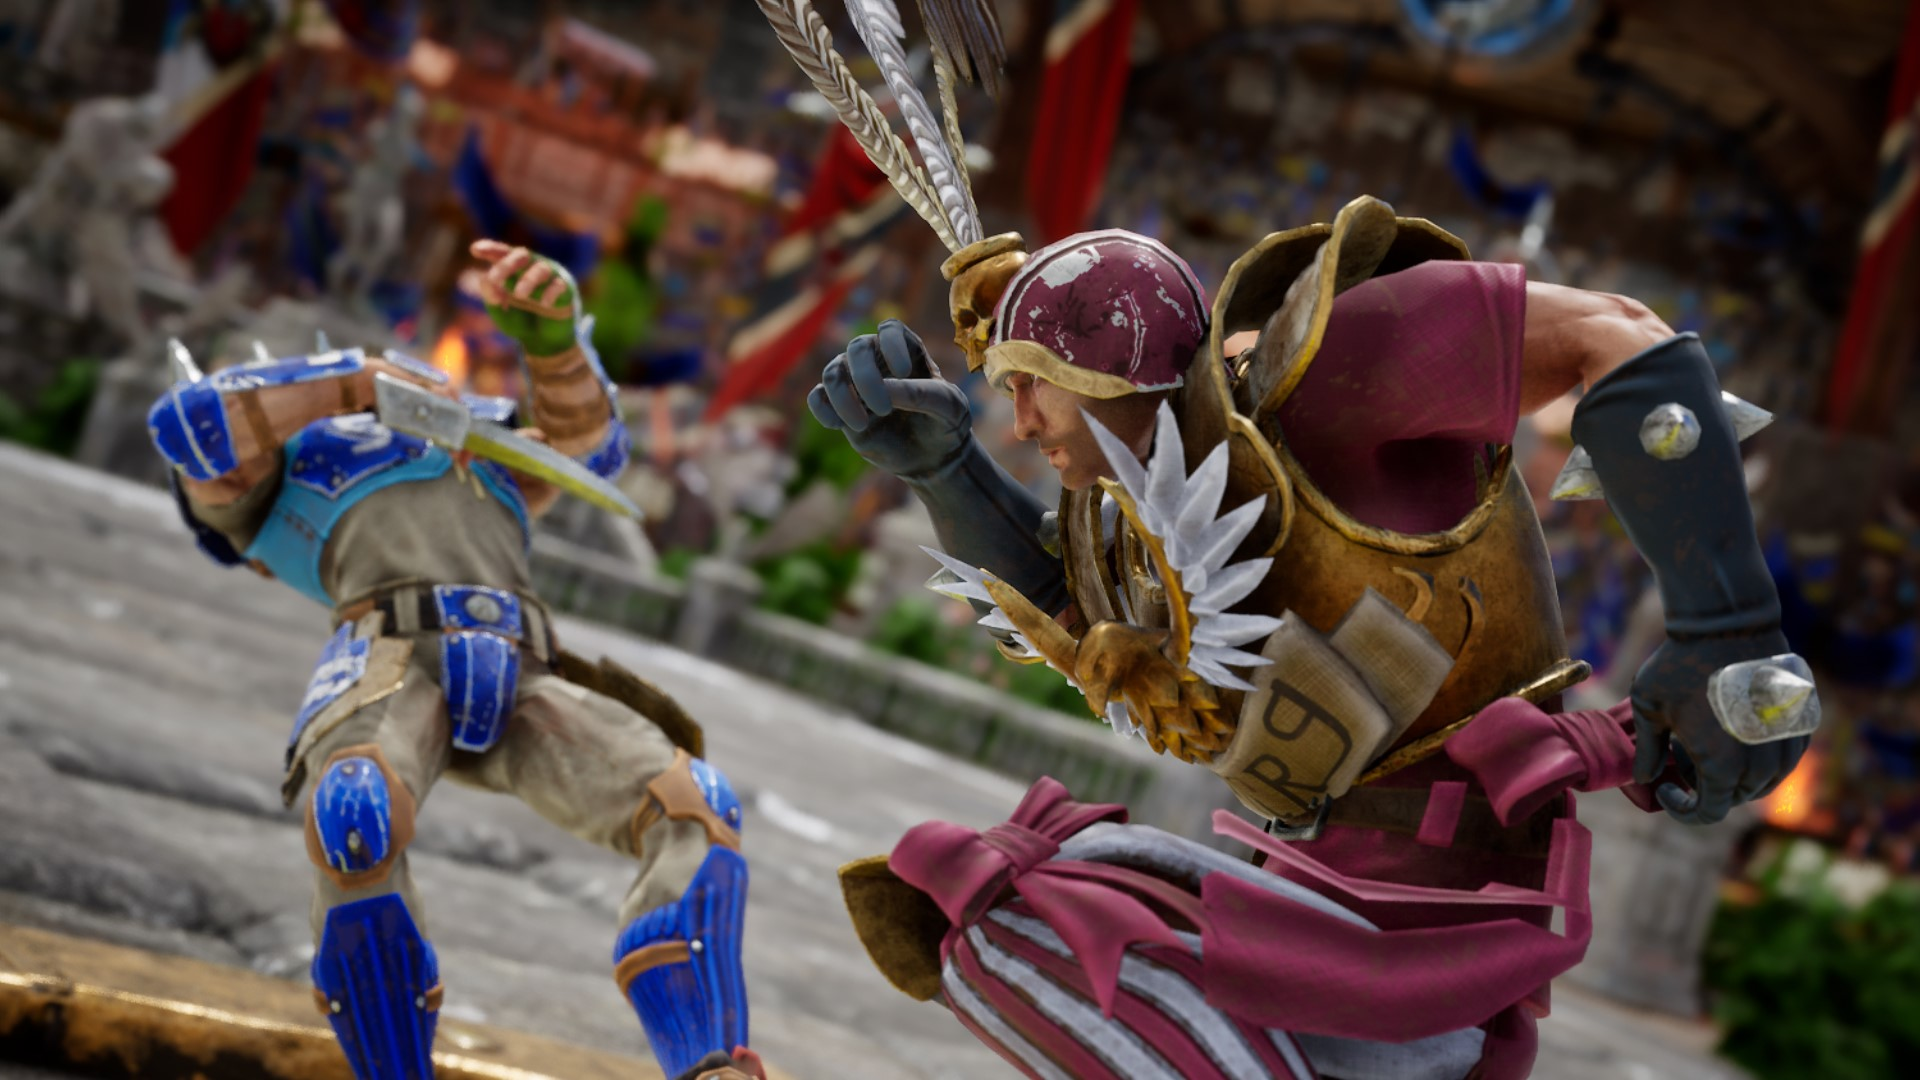 Blood Bowl 3's closed beta starts this week, and you can register to join